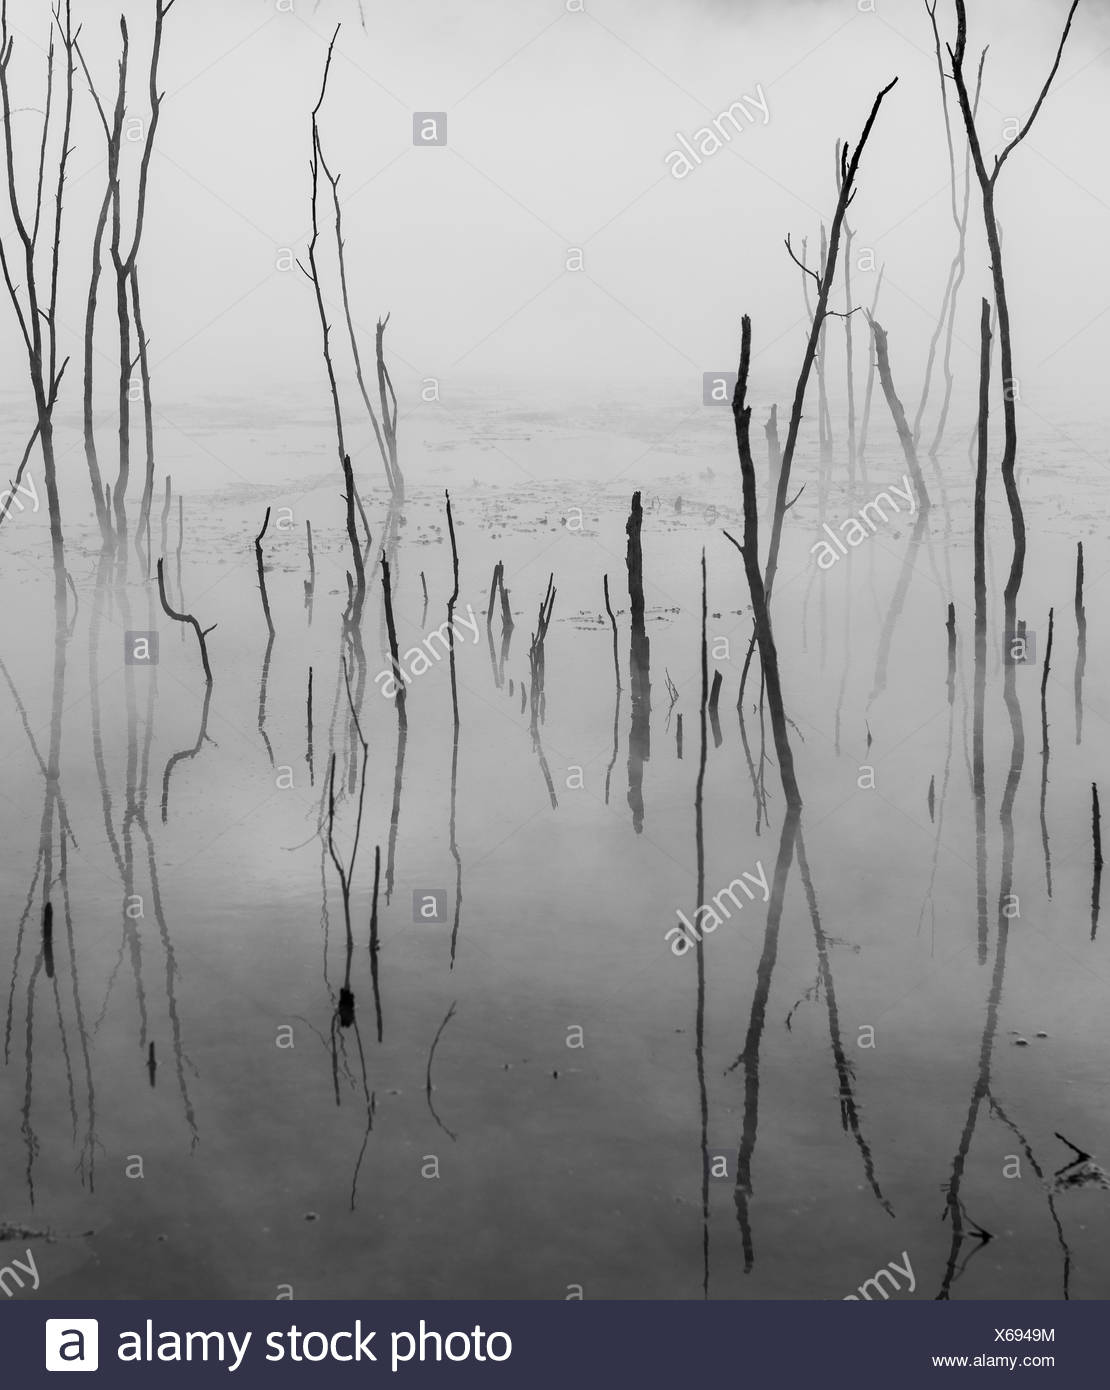 Dead branches reflected on steaming water, hot spring, Kuirau Park, Rotorua, New Zealand - Stock Image